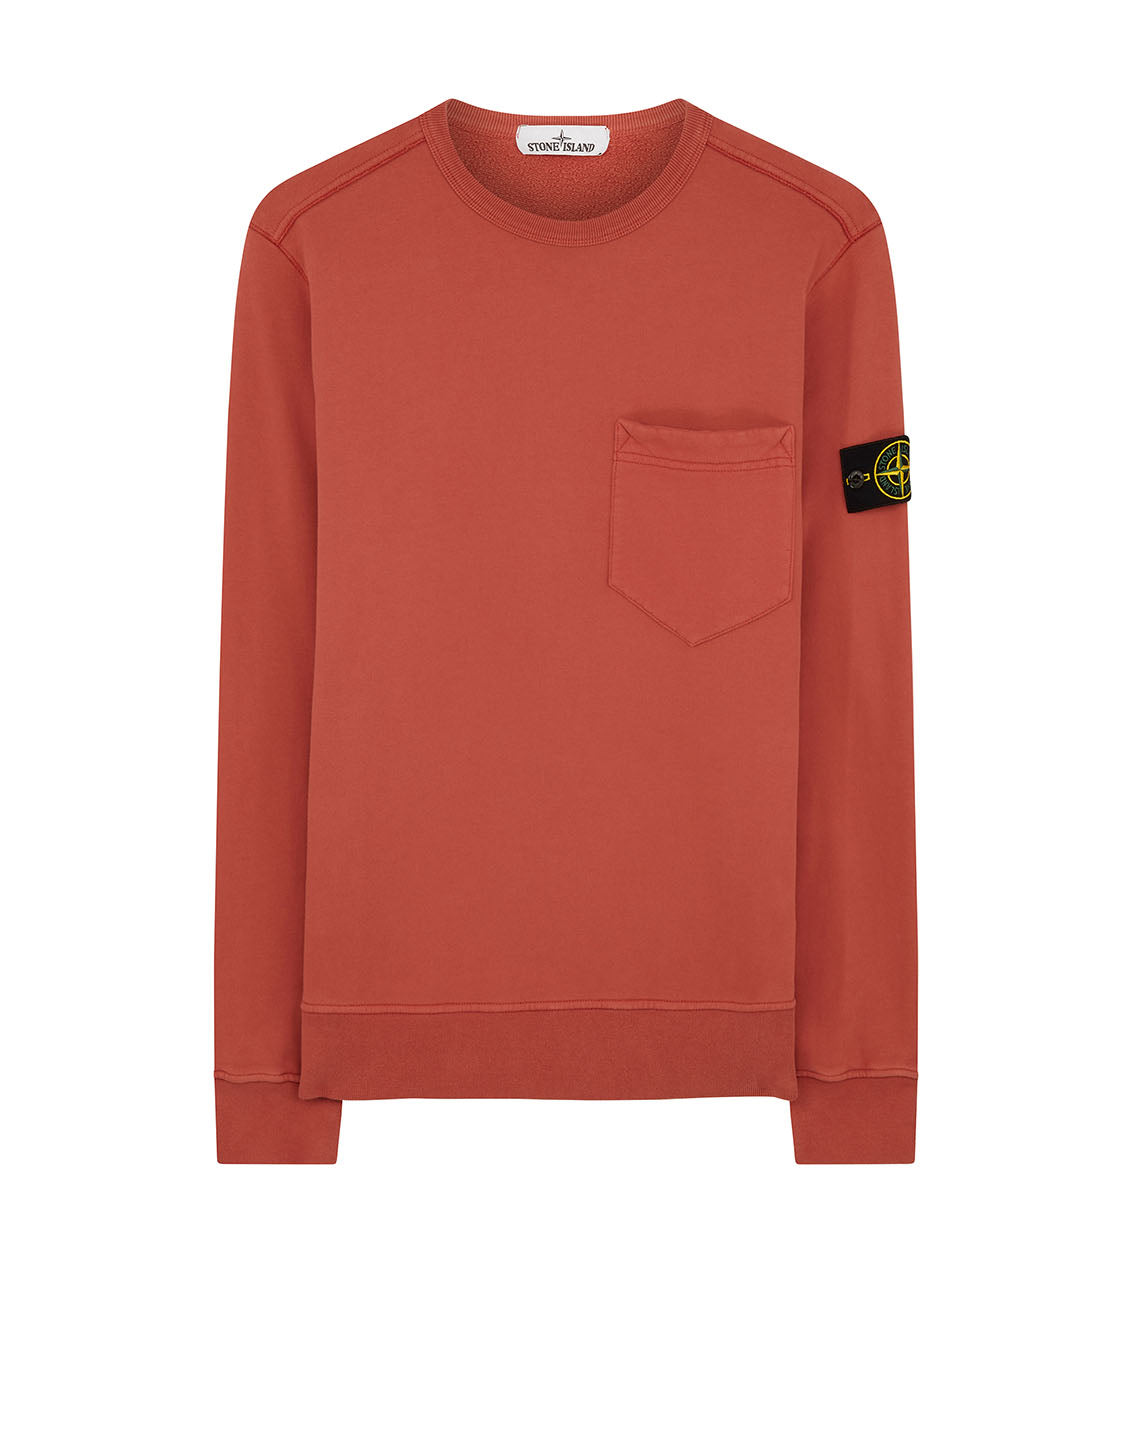 63820 Chest Pocket Crewneck Sweatshirt in Rust